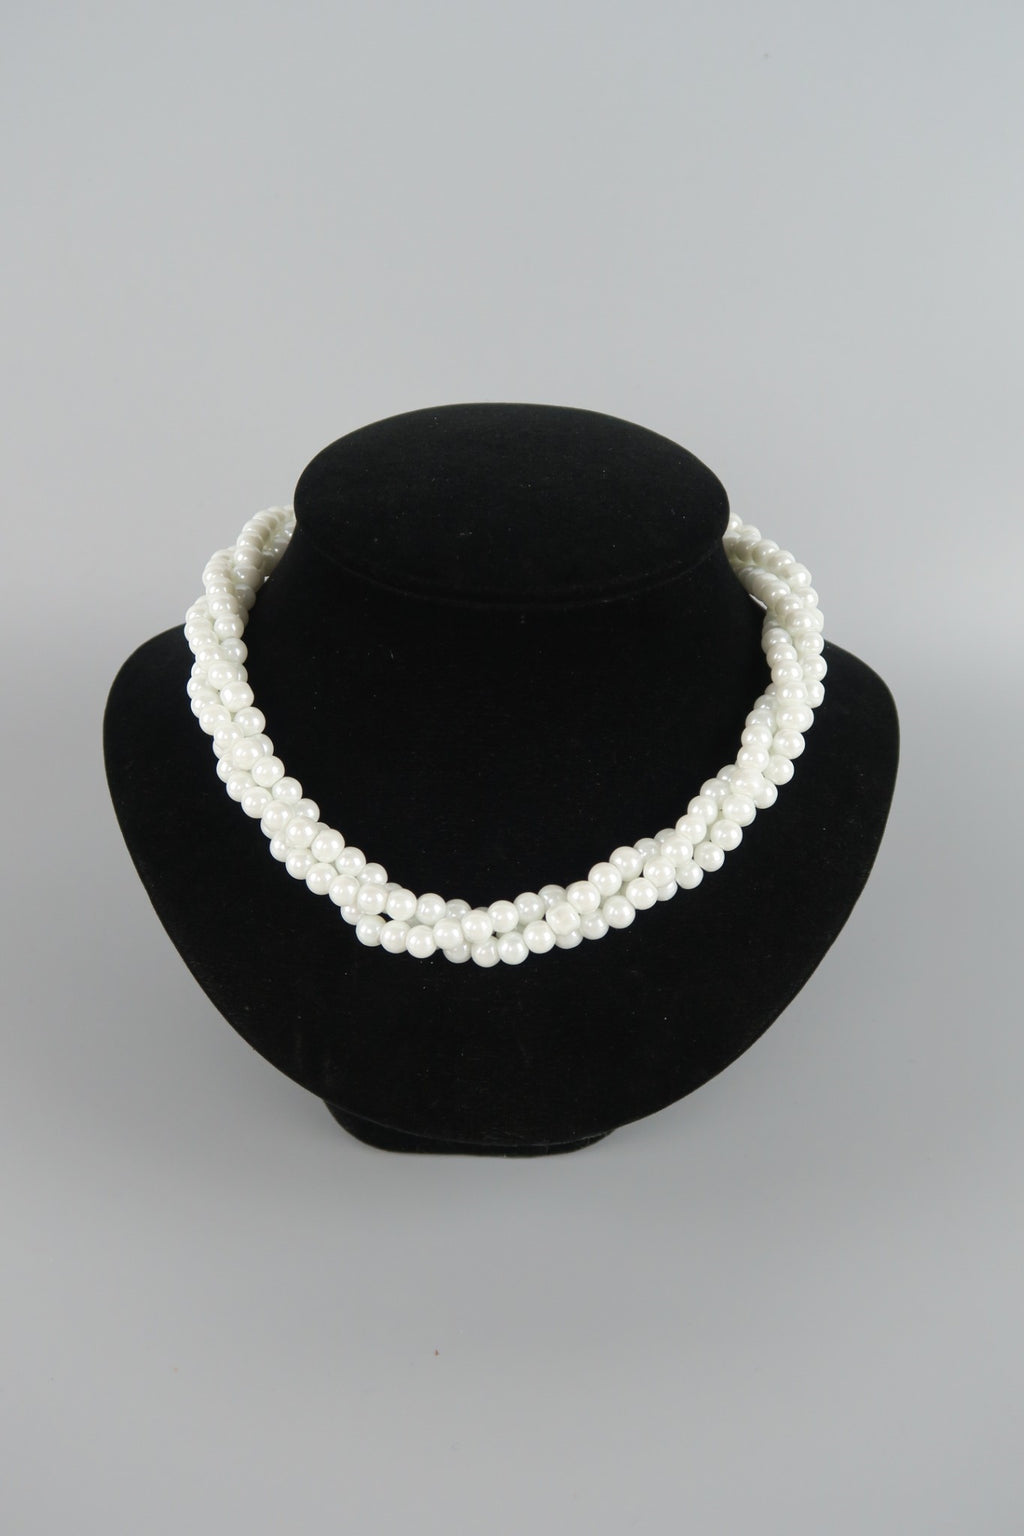 Stylish Necklace with Cystals